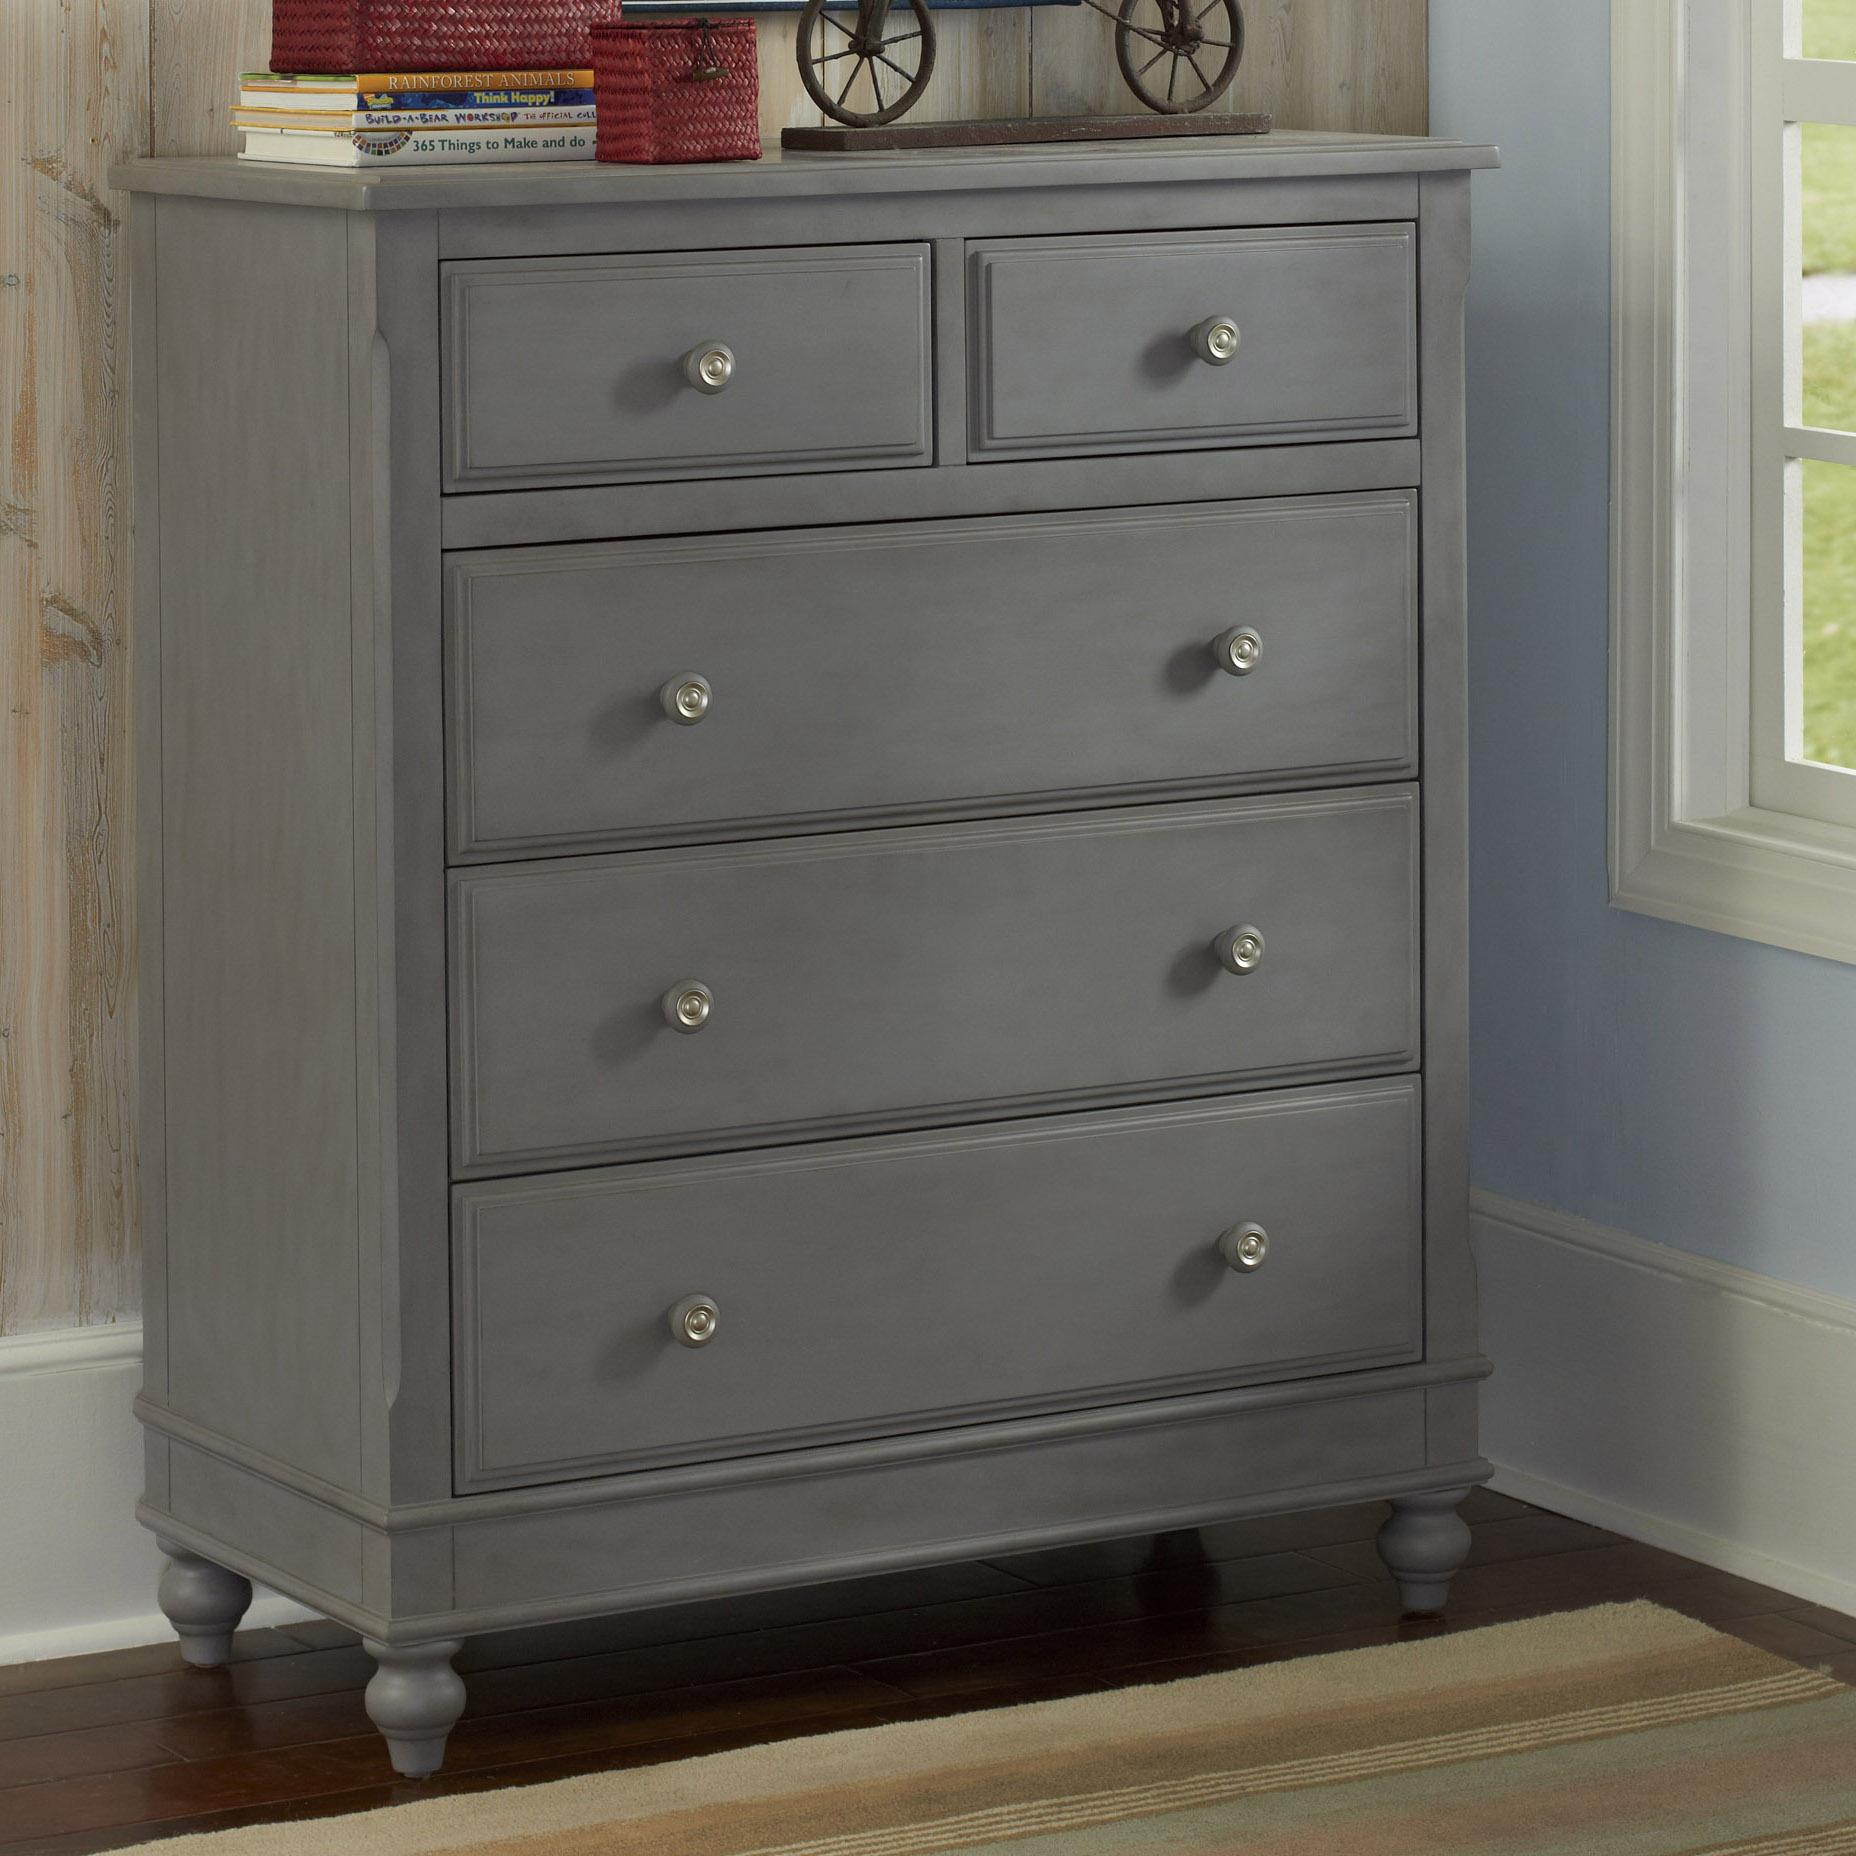 Lake House 5 Drawer Chest by NE Kids at Darvin Furniture